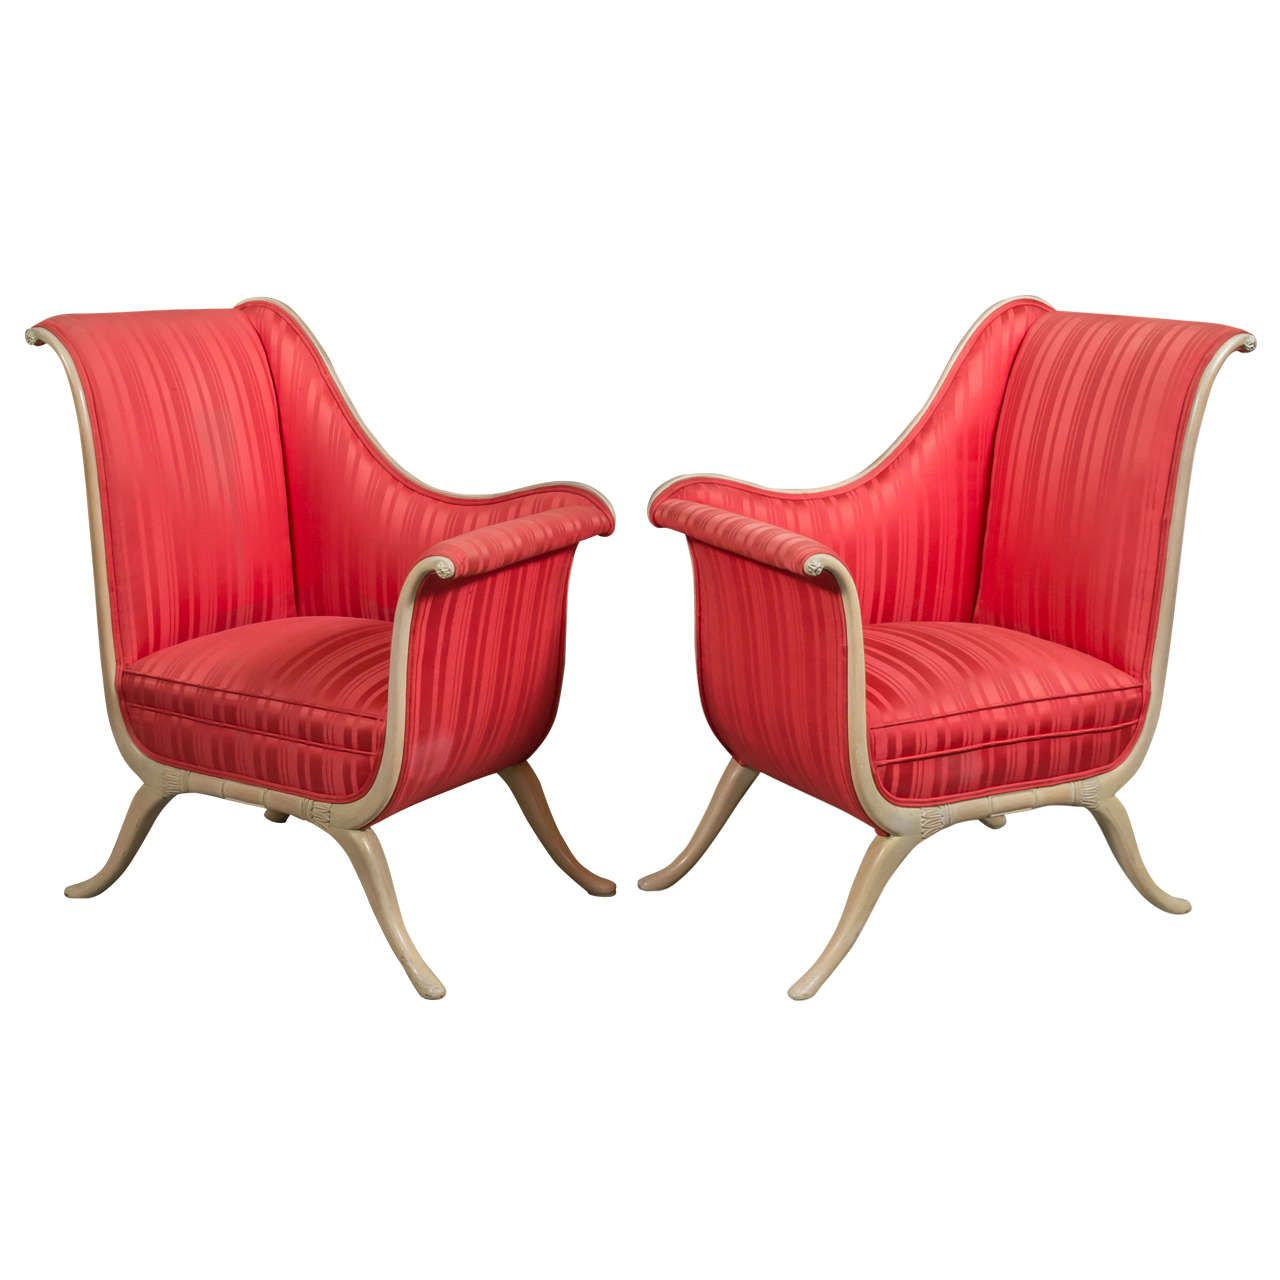 Pair of Fabulous 1950s Hollywood Regency Chairs 1950s